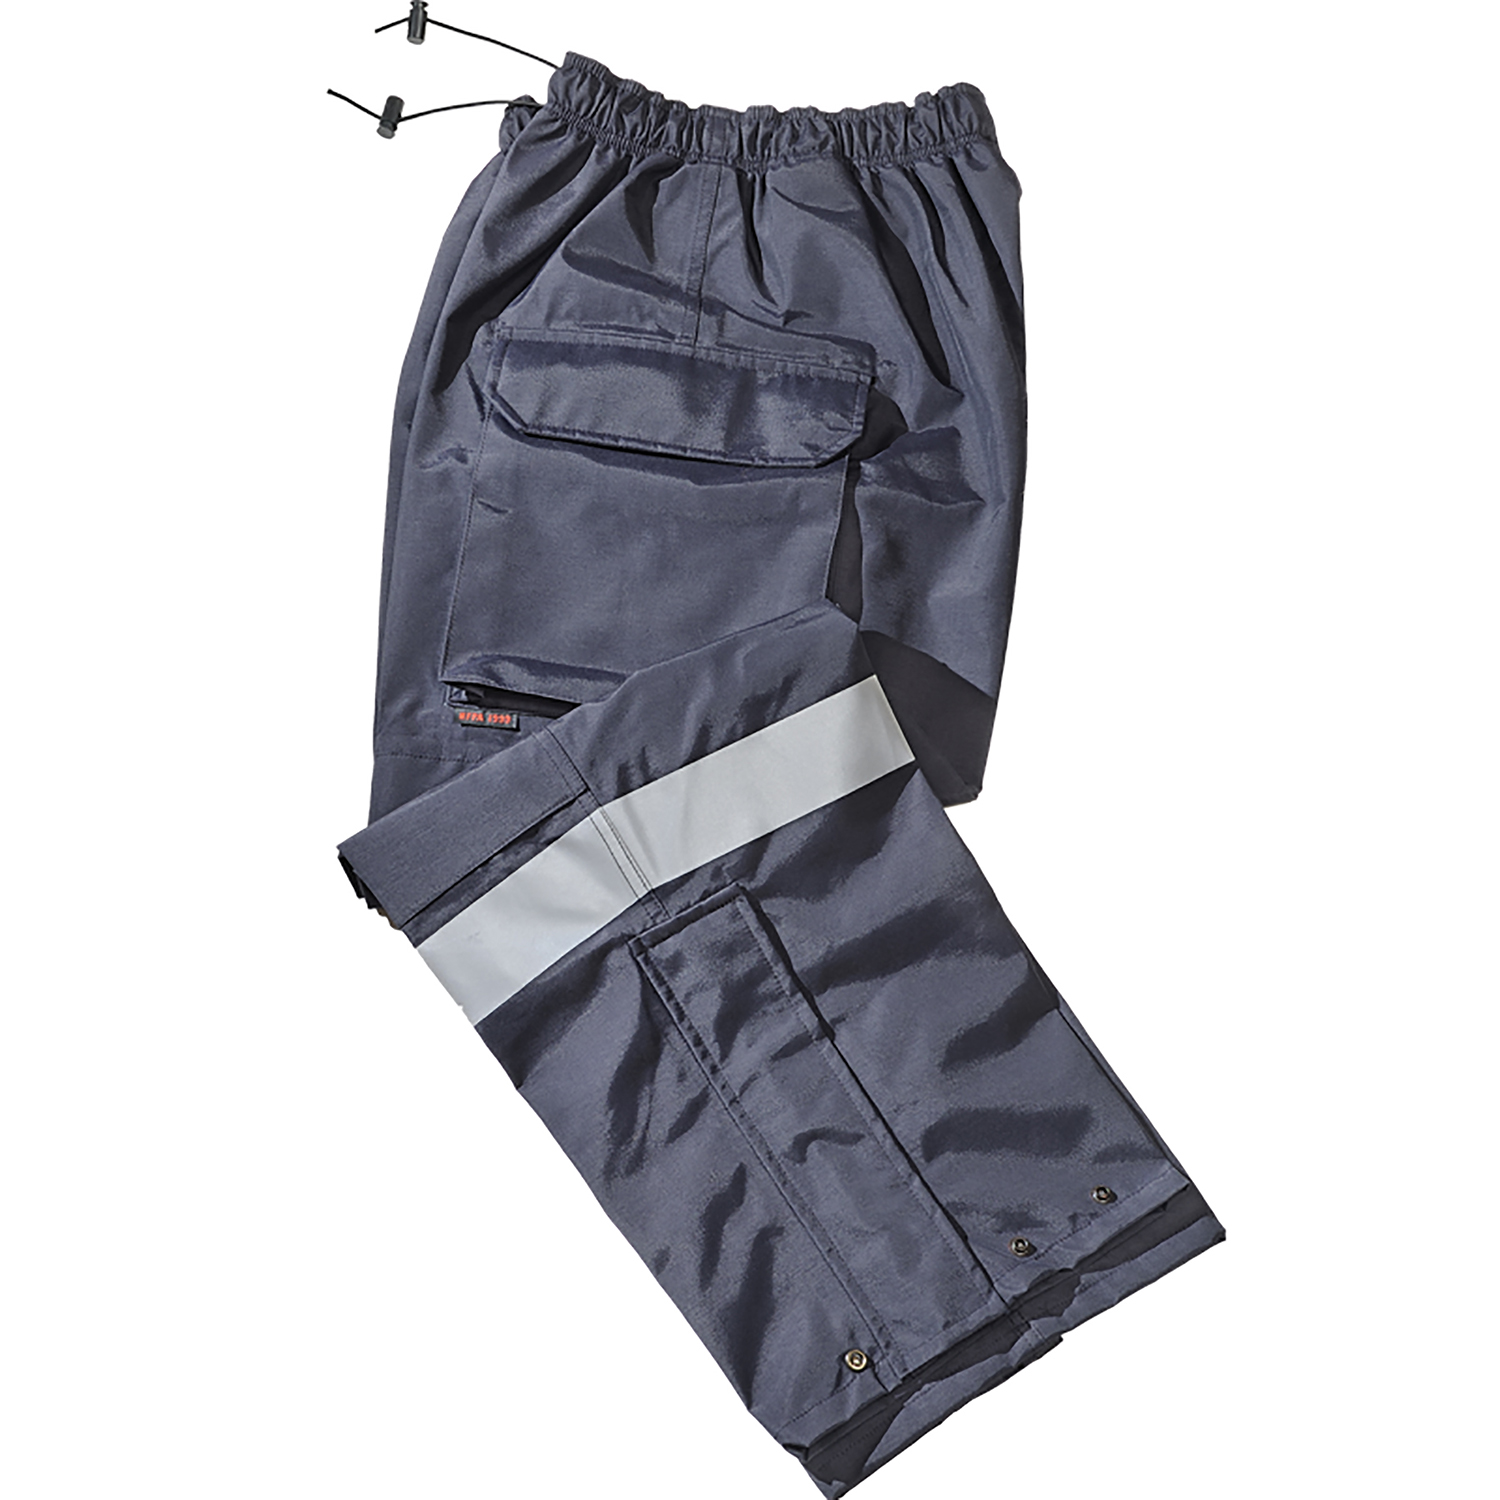 Gerber 911 Rain Pants with Thinsulate Liner